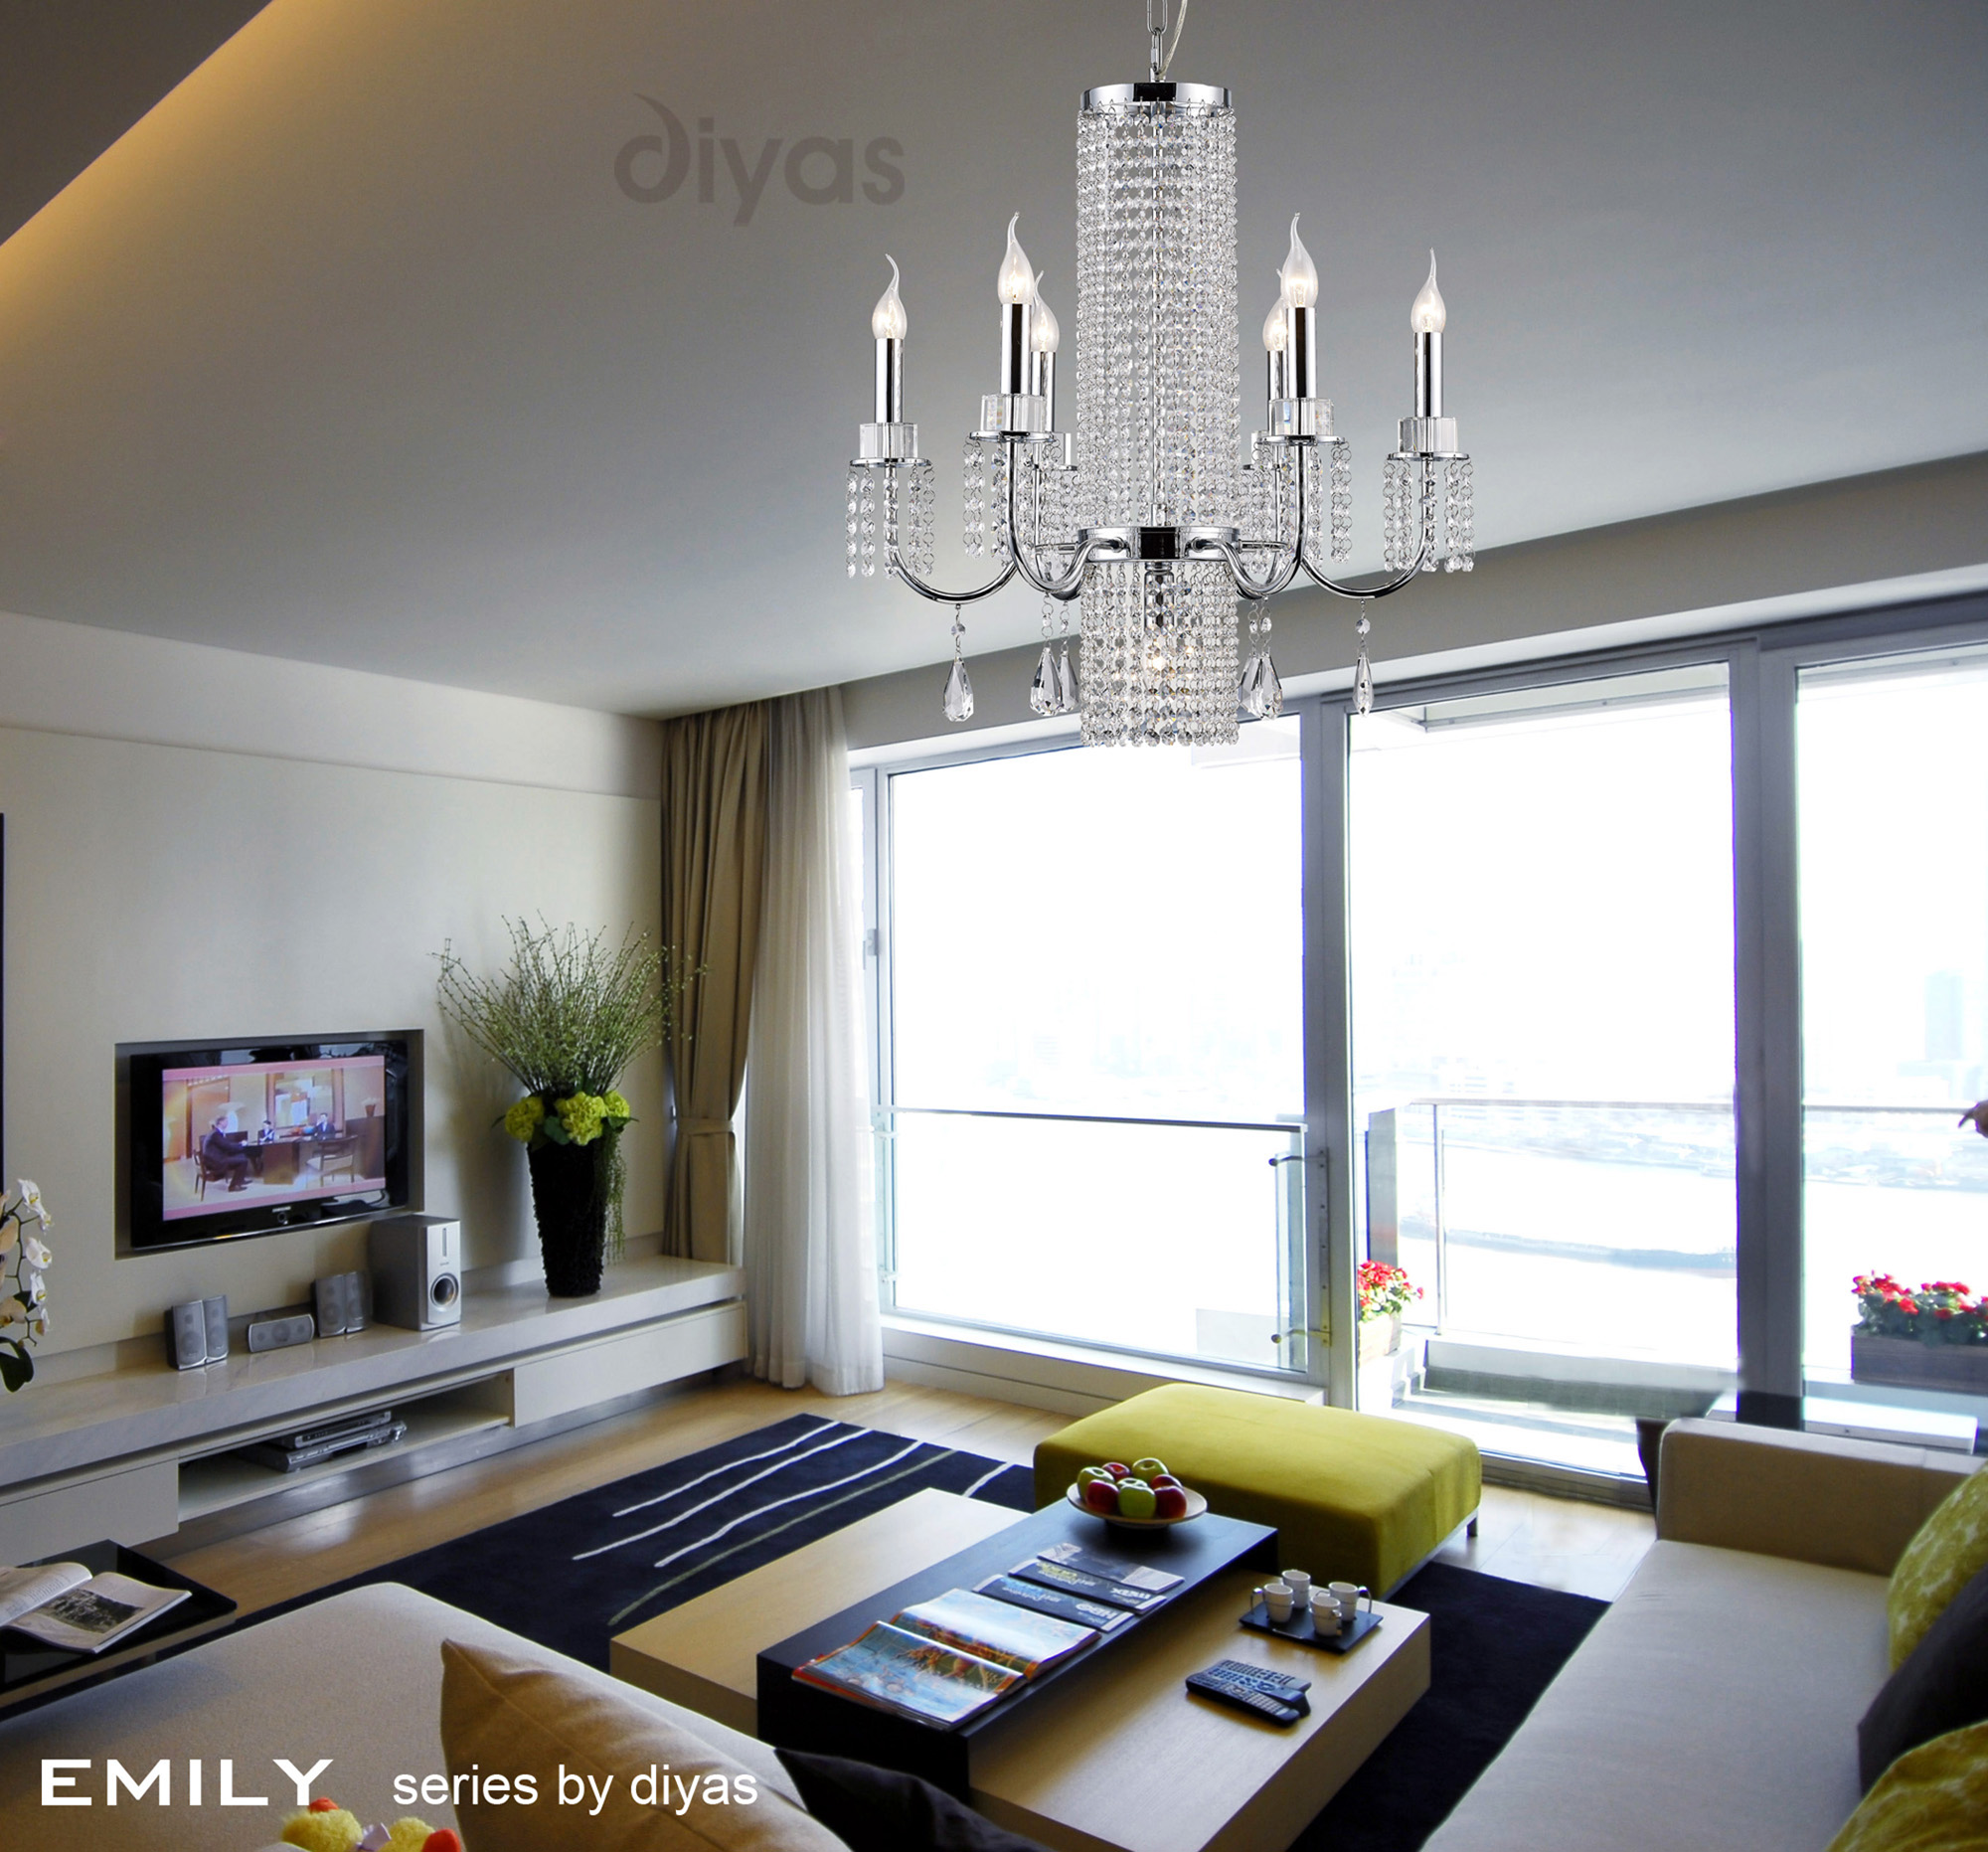 Emily Crystal Ceiling Lights Diyas Modern Chandeliers